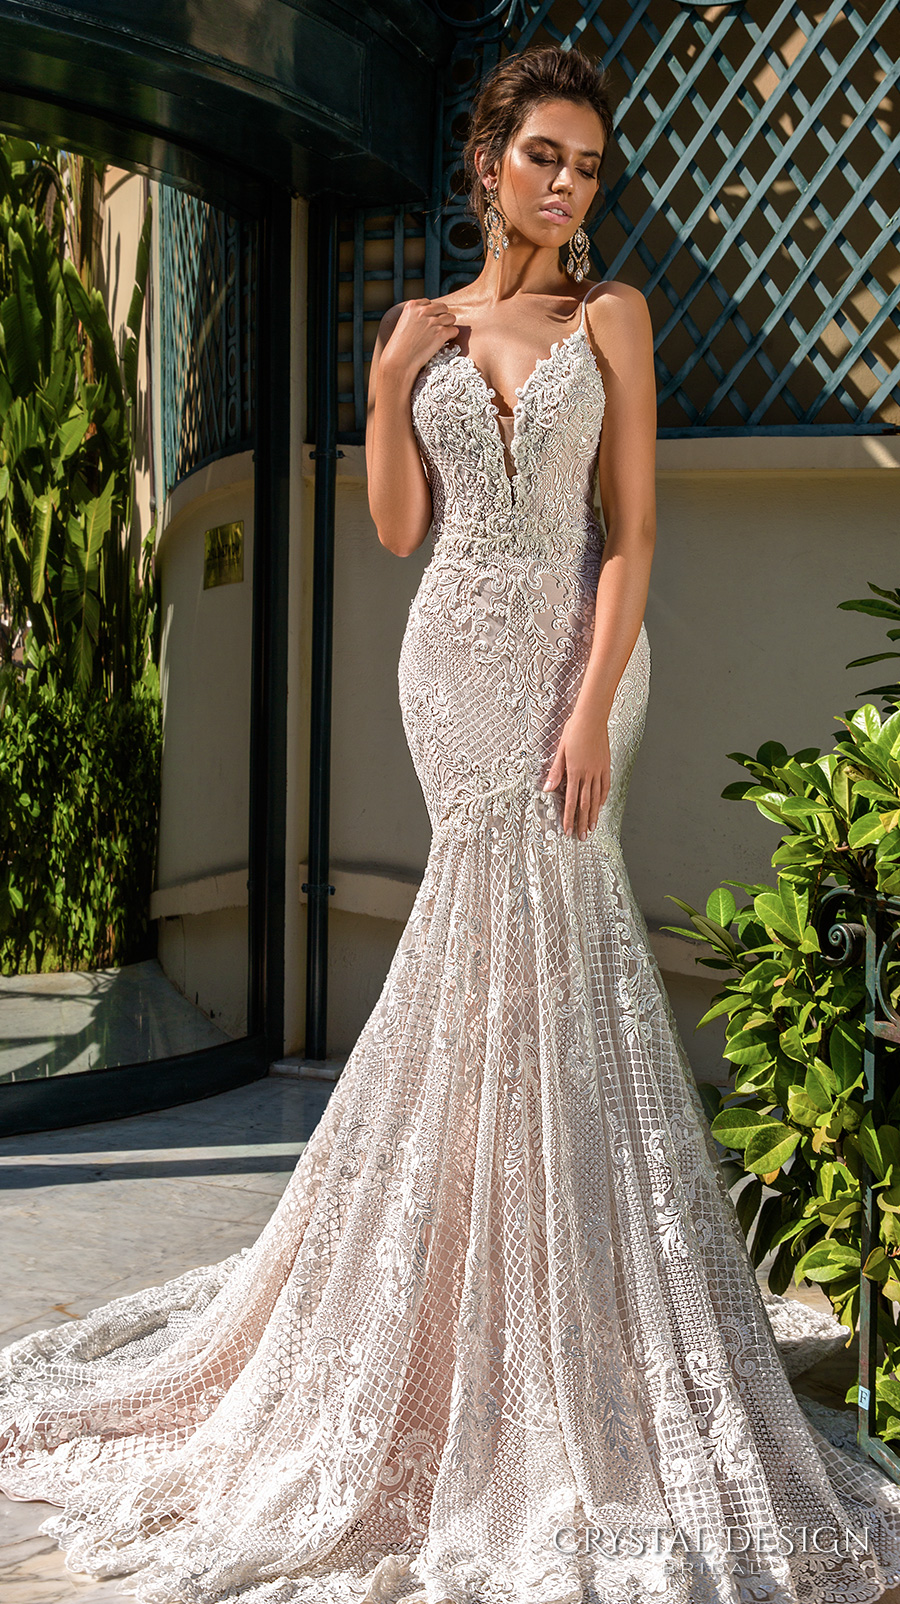 crystal design 2017 bridal sleeveless spagetti strap deep plunging v neck full embellishment elegant sexy fit and flare wedding dress low back chapel train (11 fler) mv